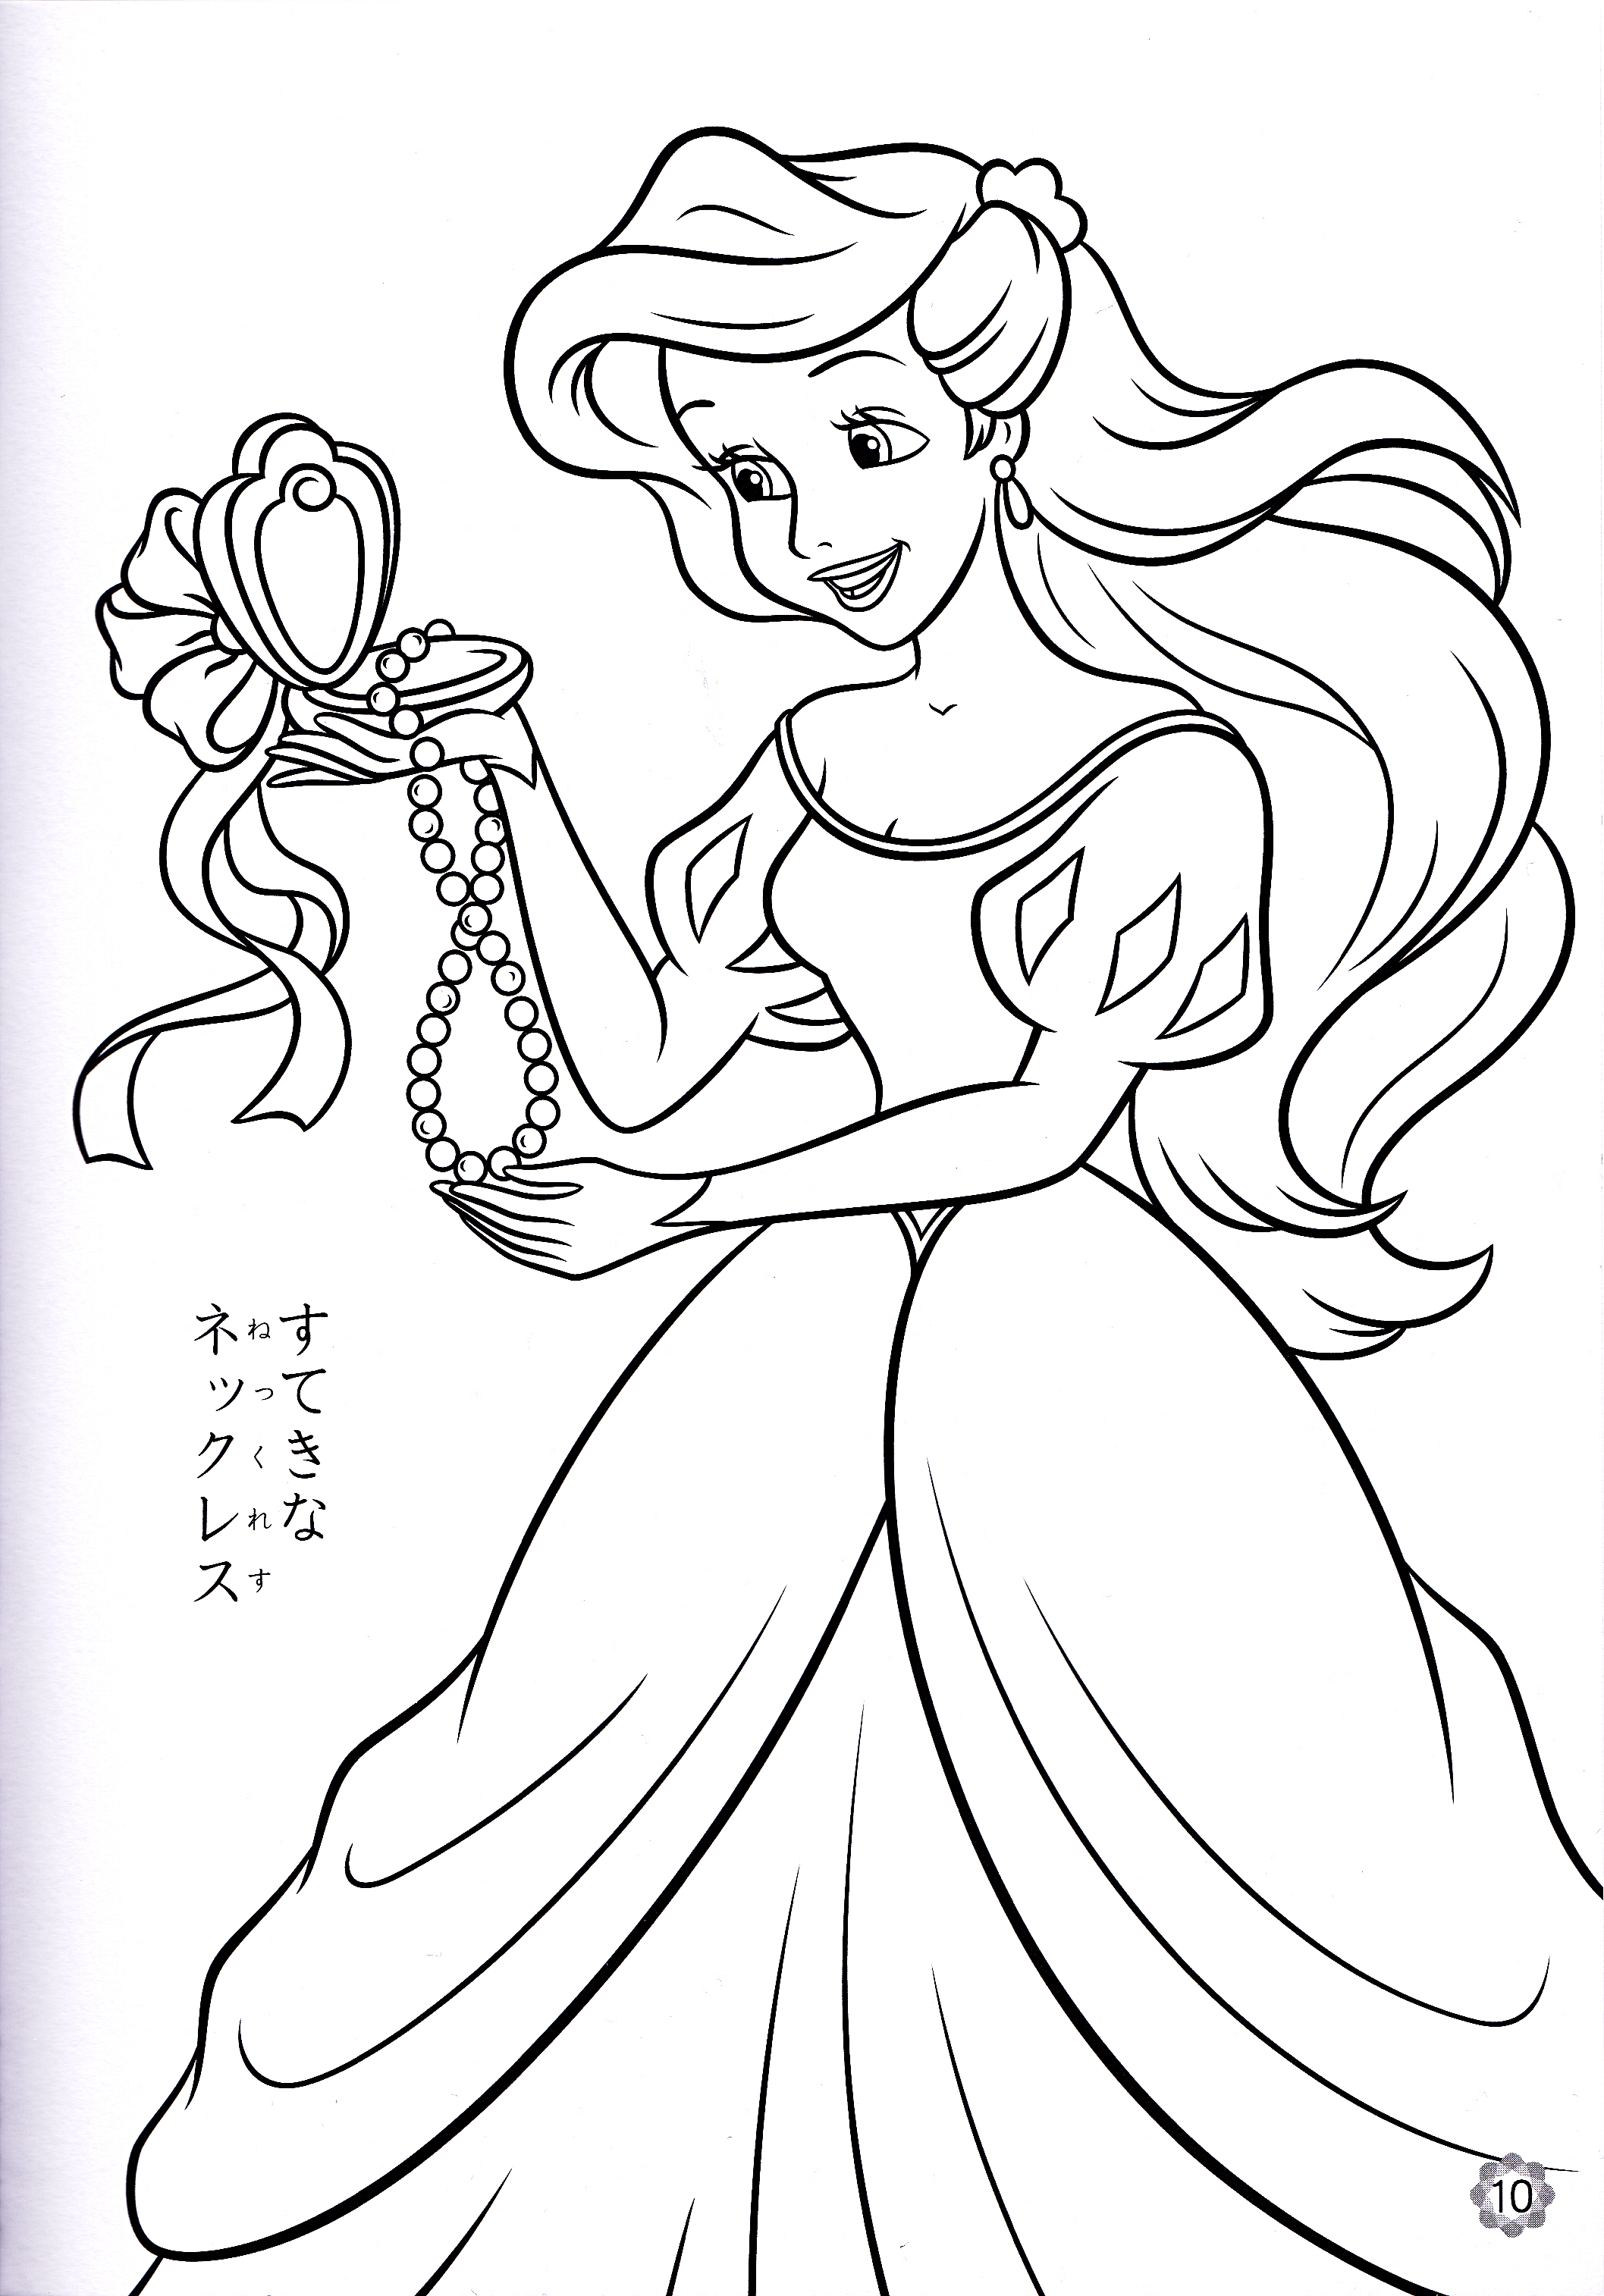 Coloring Pages For Disney Princesses : Free printable disney princess coloring pages for kids